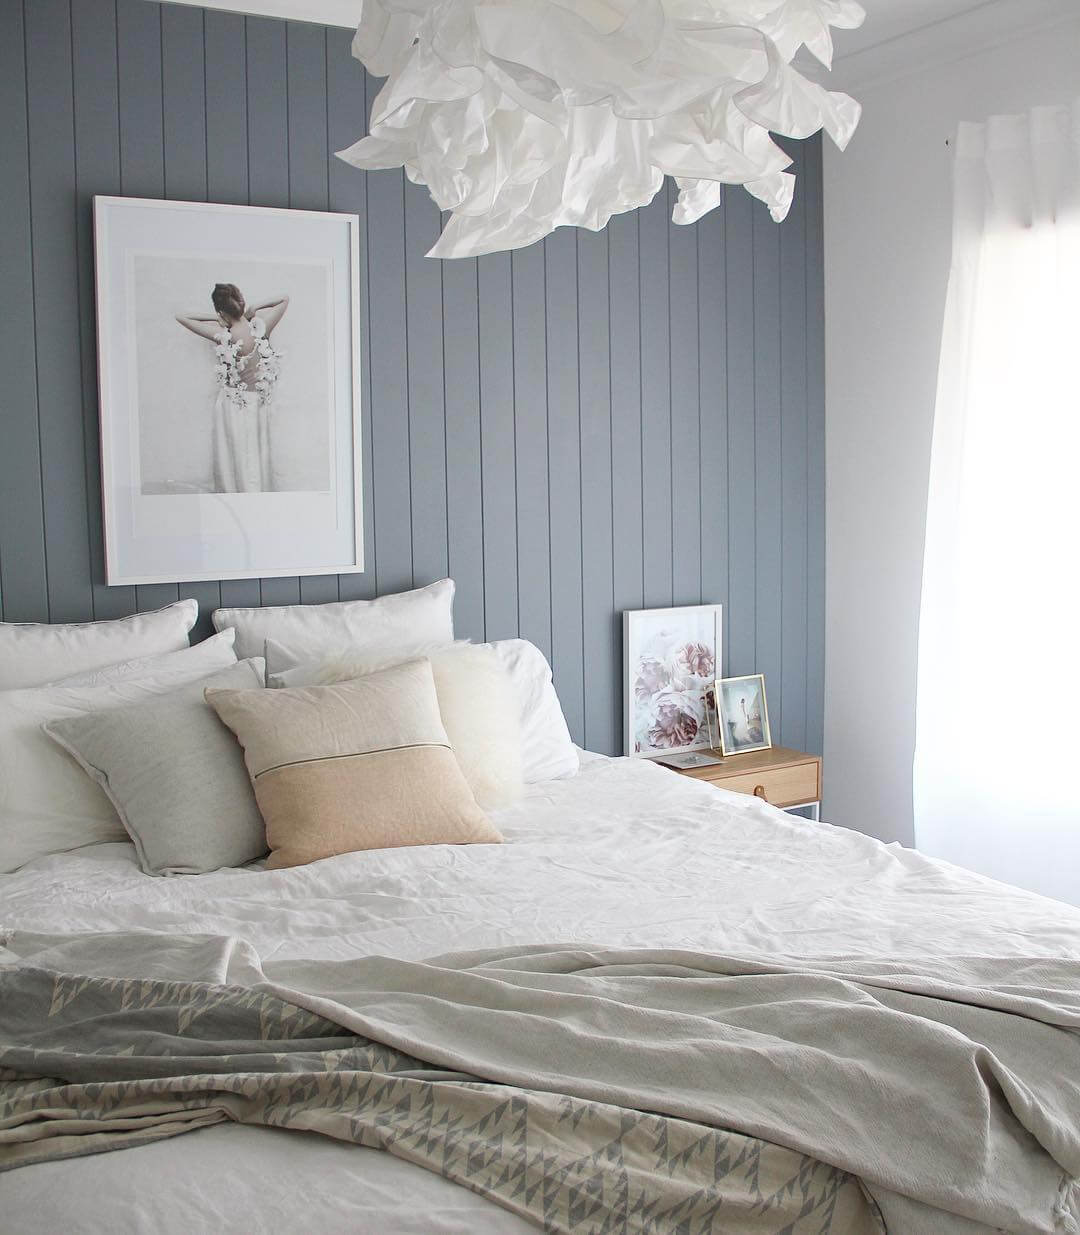 easycraft tongue and groove wall panelling in white bedroom with blue feature wall